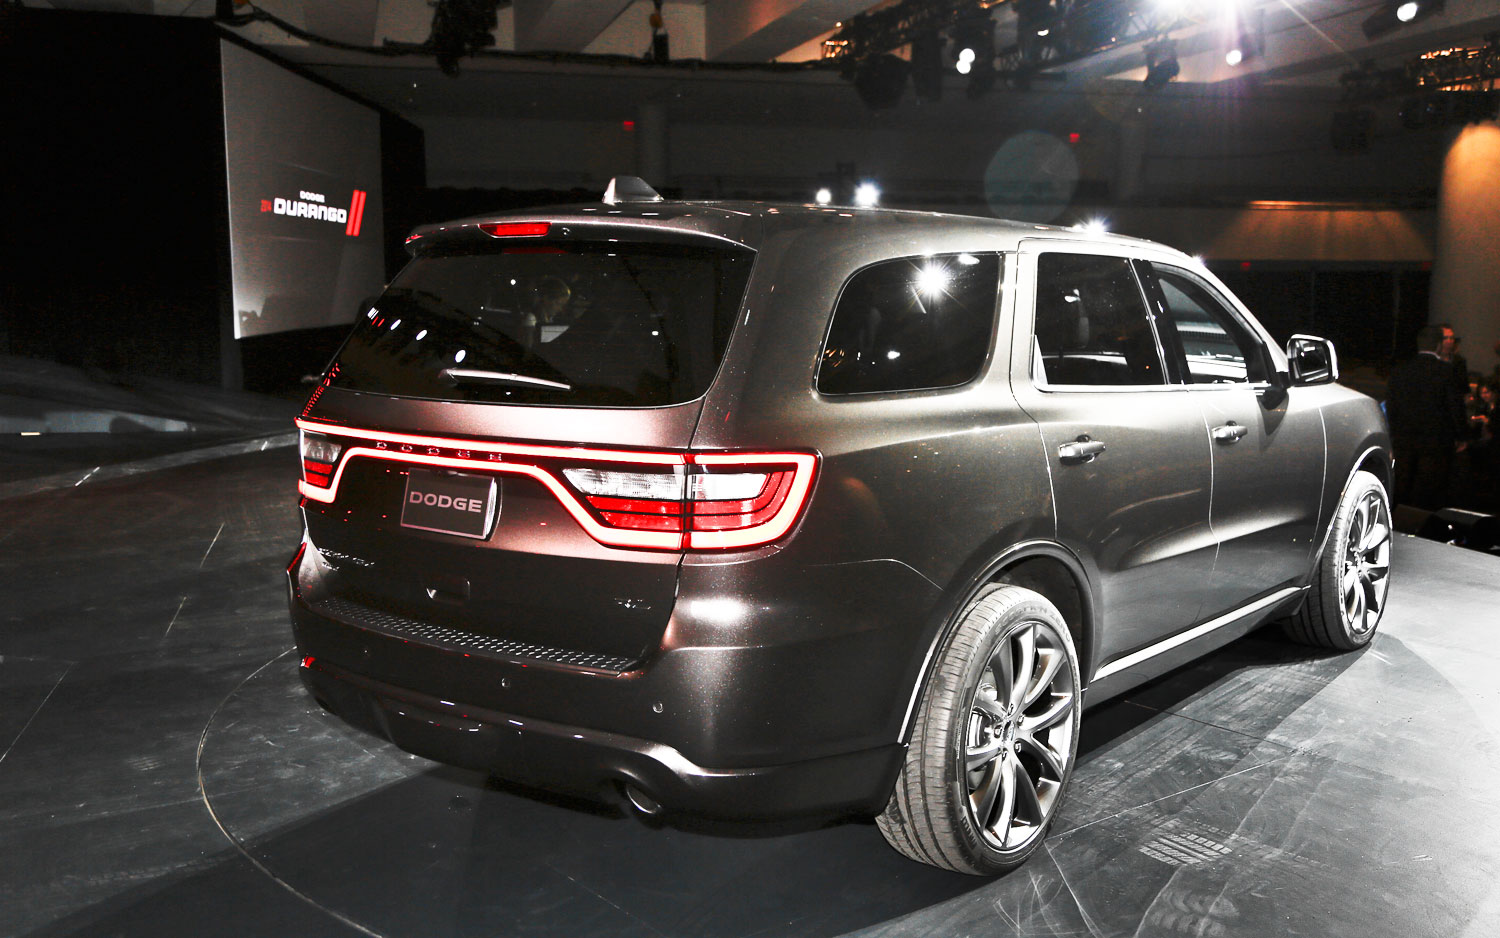 first look: 2014 dodge durango - automobile magazine